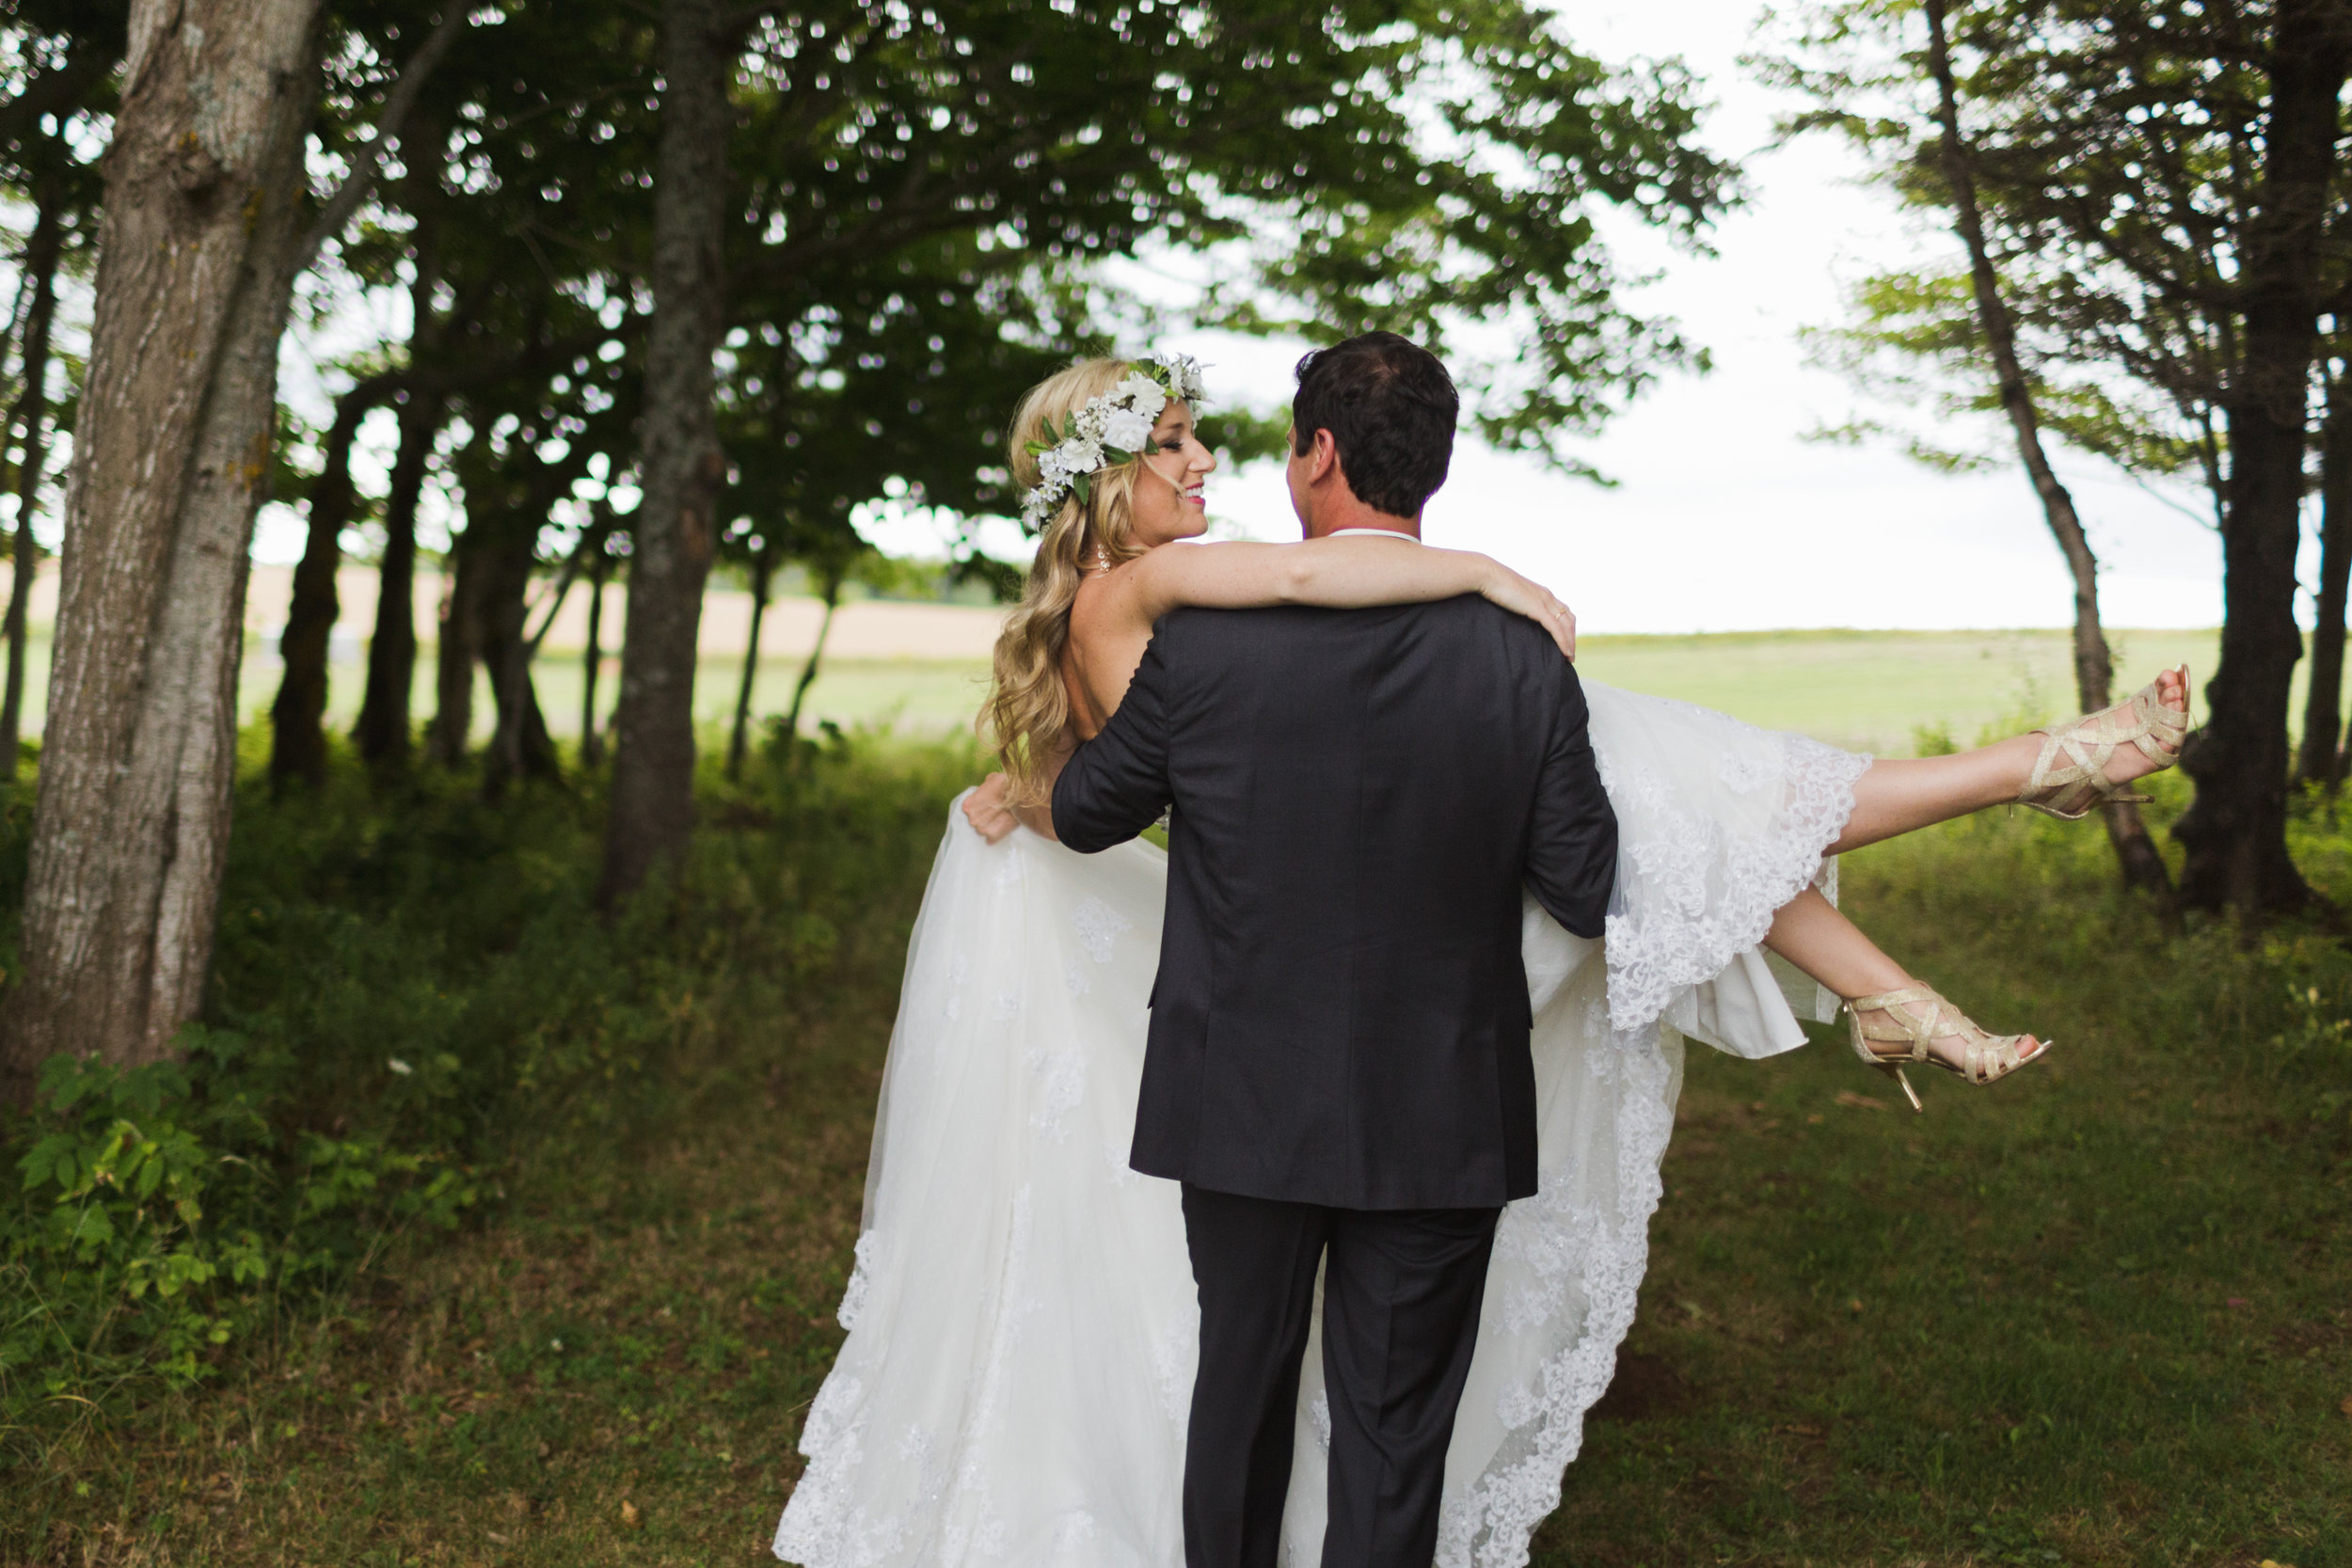 moncton_wedding_photographer_caro_photo-11.jpg